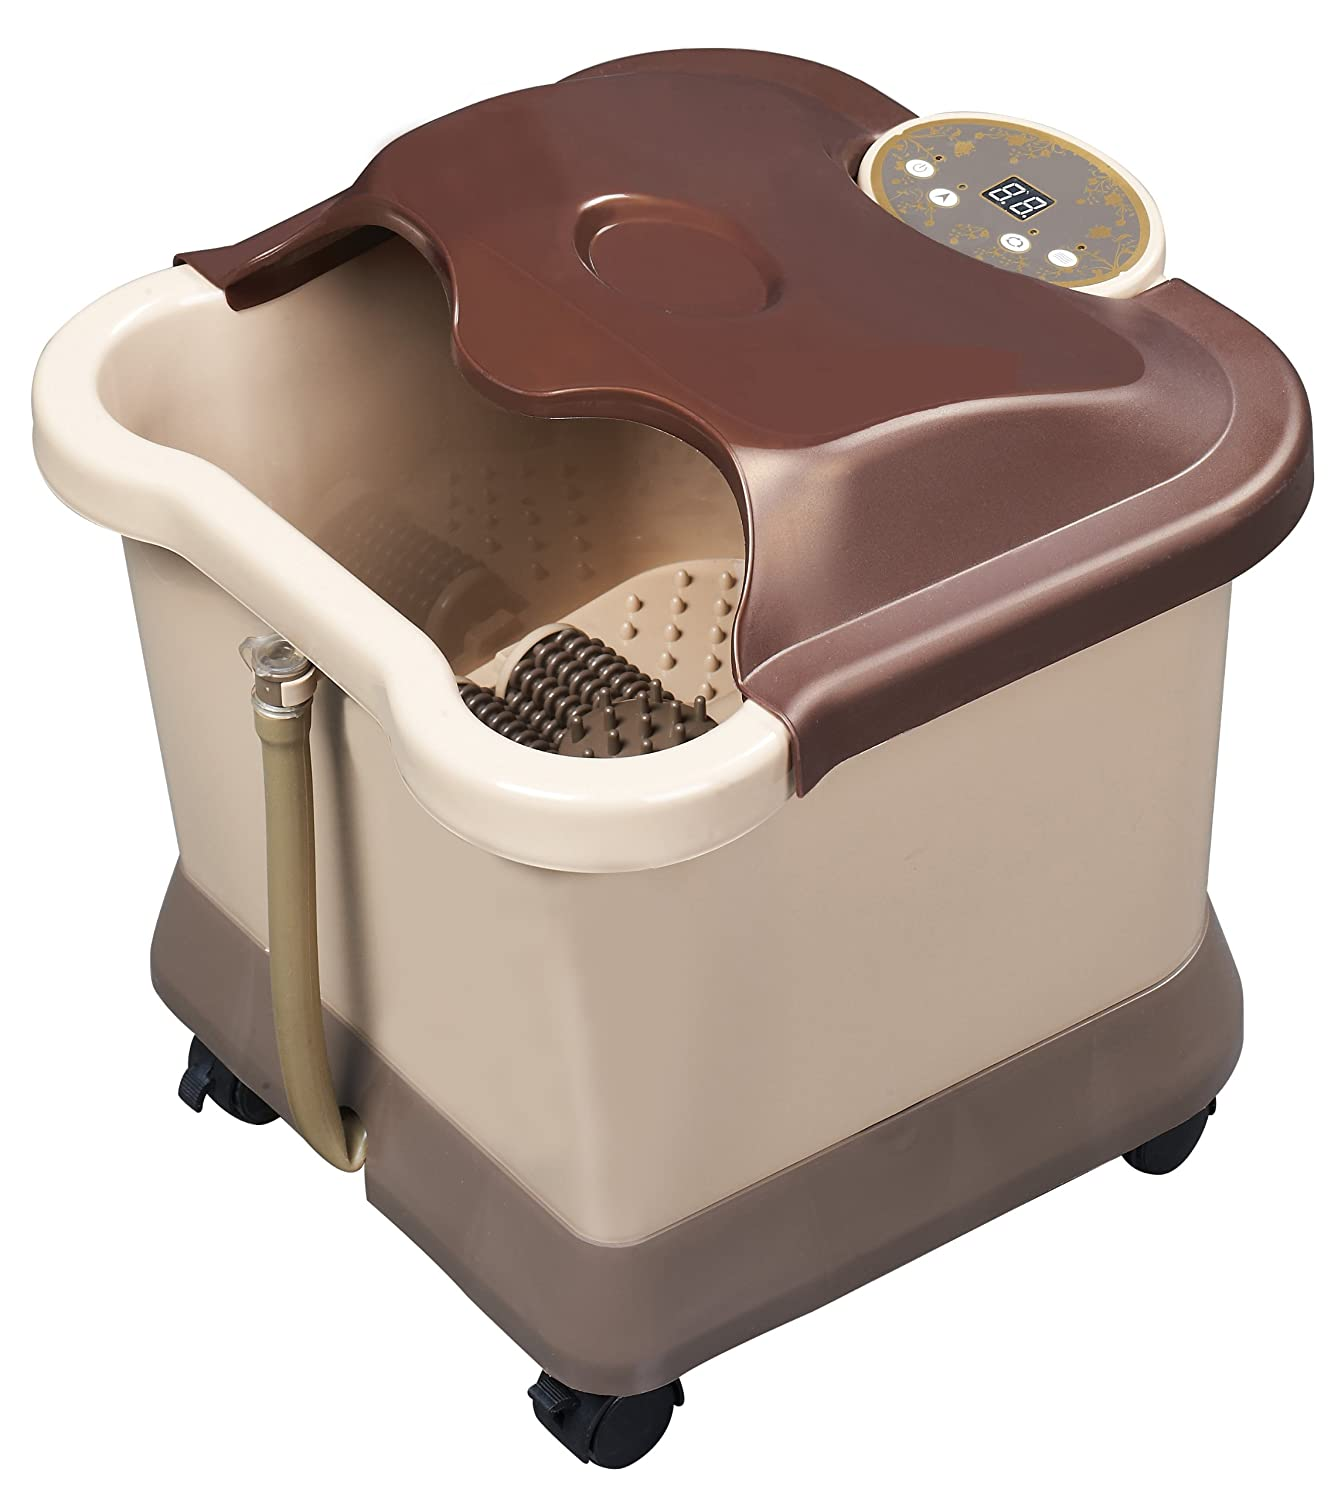 Amazon.com: Carepeutic Deluxe Motorized Foot and Leg Spa Bath ...